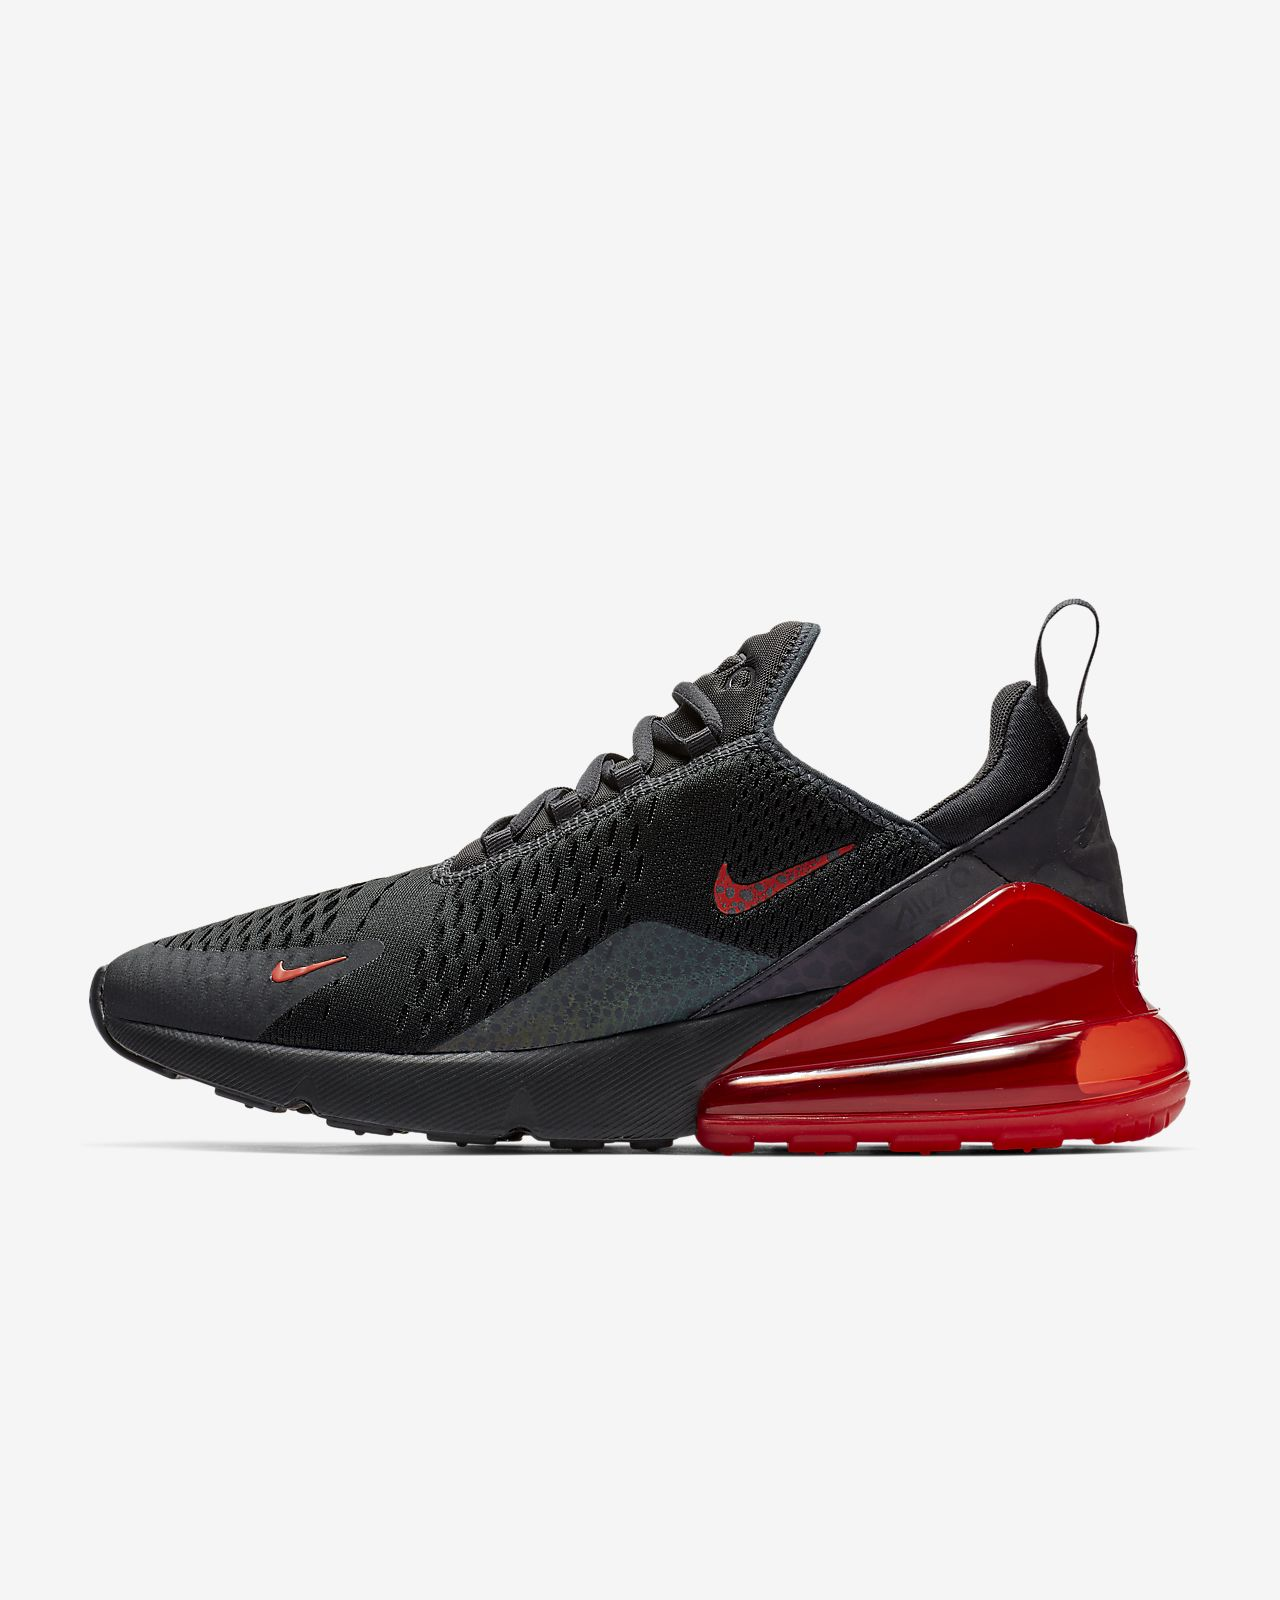 Chaussure Nike Air Max 270 SE Reflective pour Homme